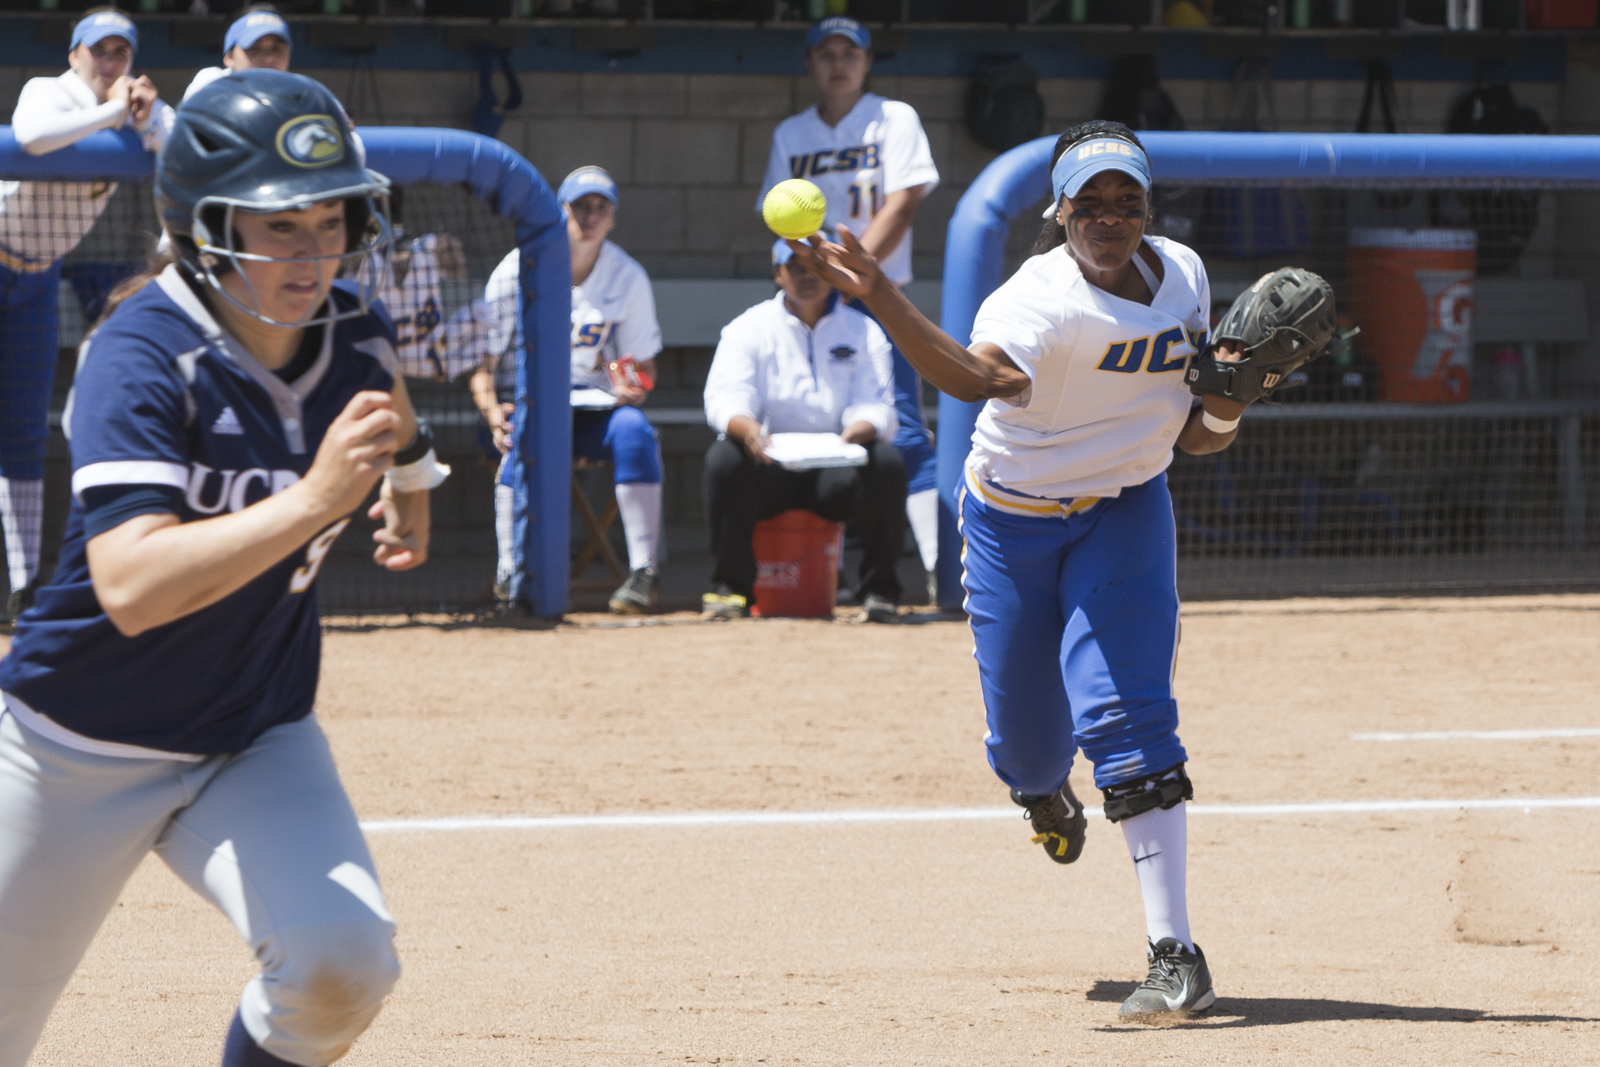 Attempting to beat the runner, DeJanee Moore hurls the ball to first base. Dustin Harris/Daily Nexus